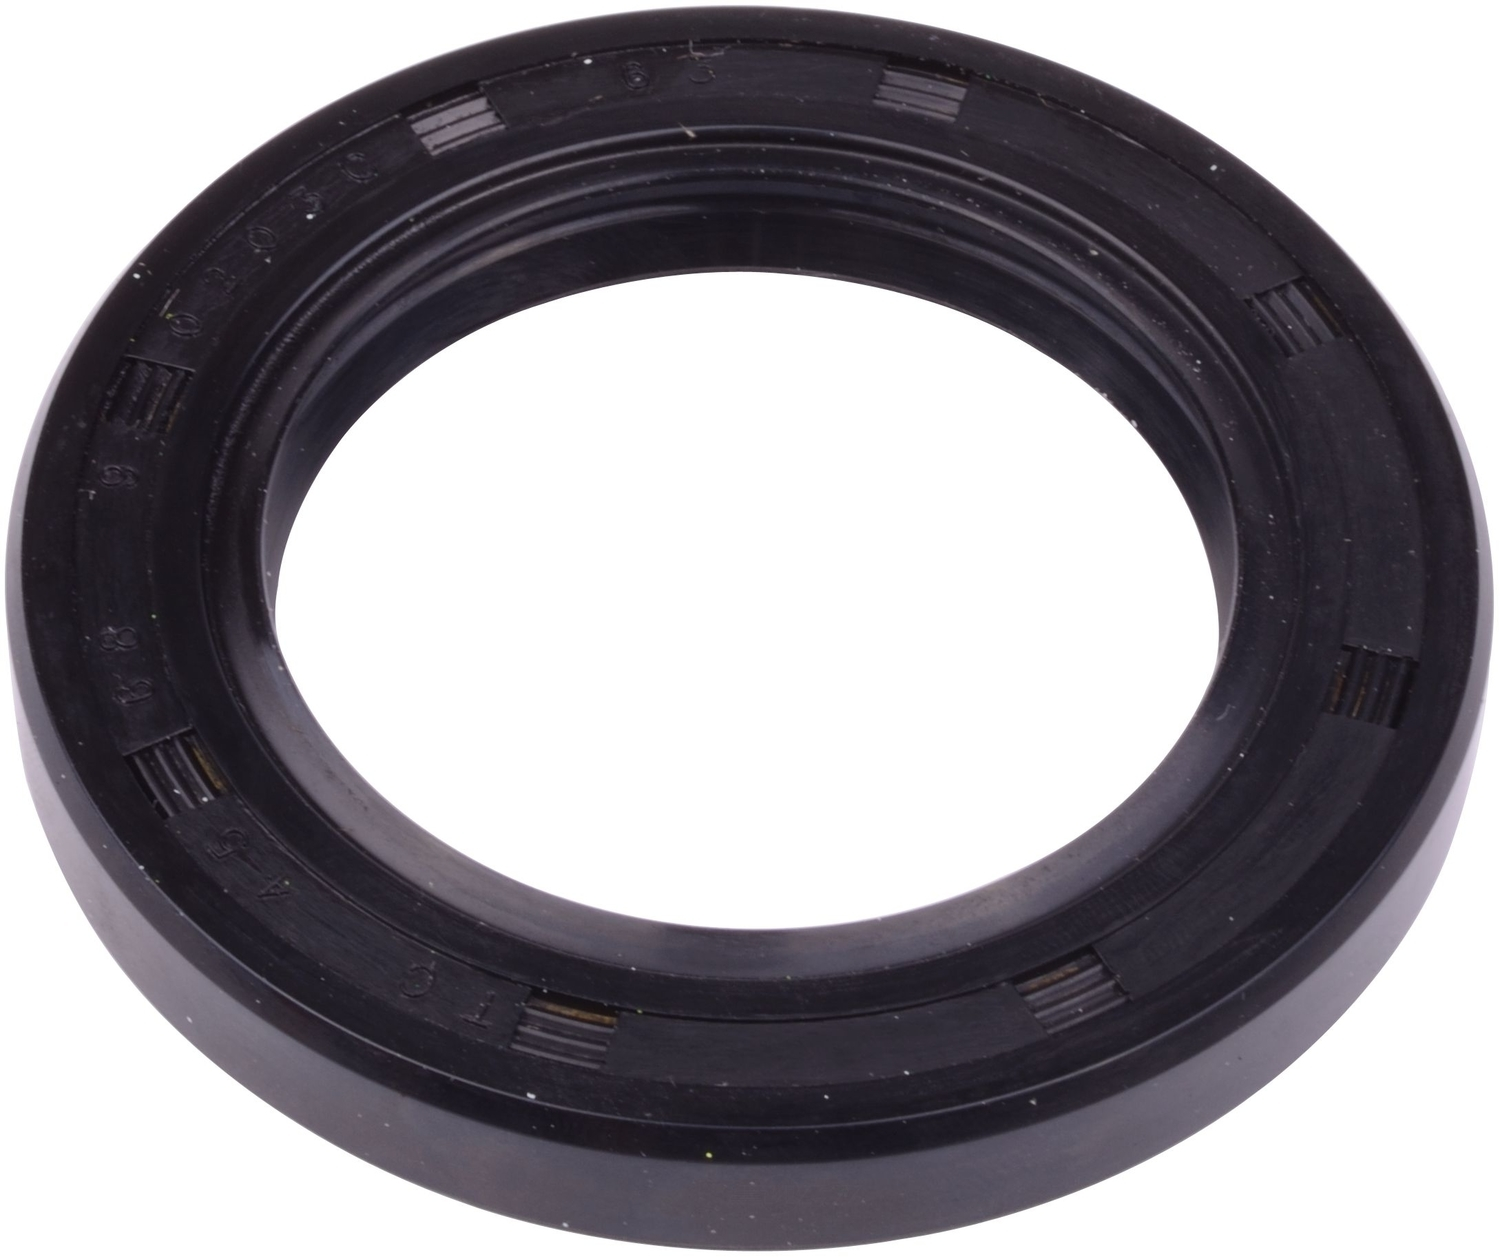 SKF (CHICAGO RAWHIDE) - Manual Trans Output Shaft Seal - SKF 17758